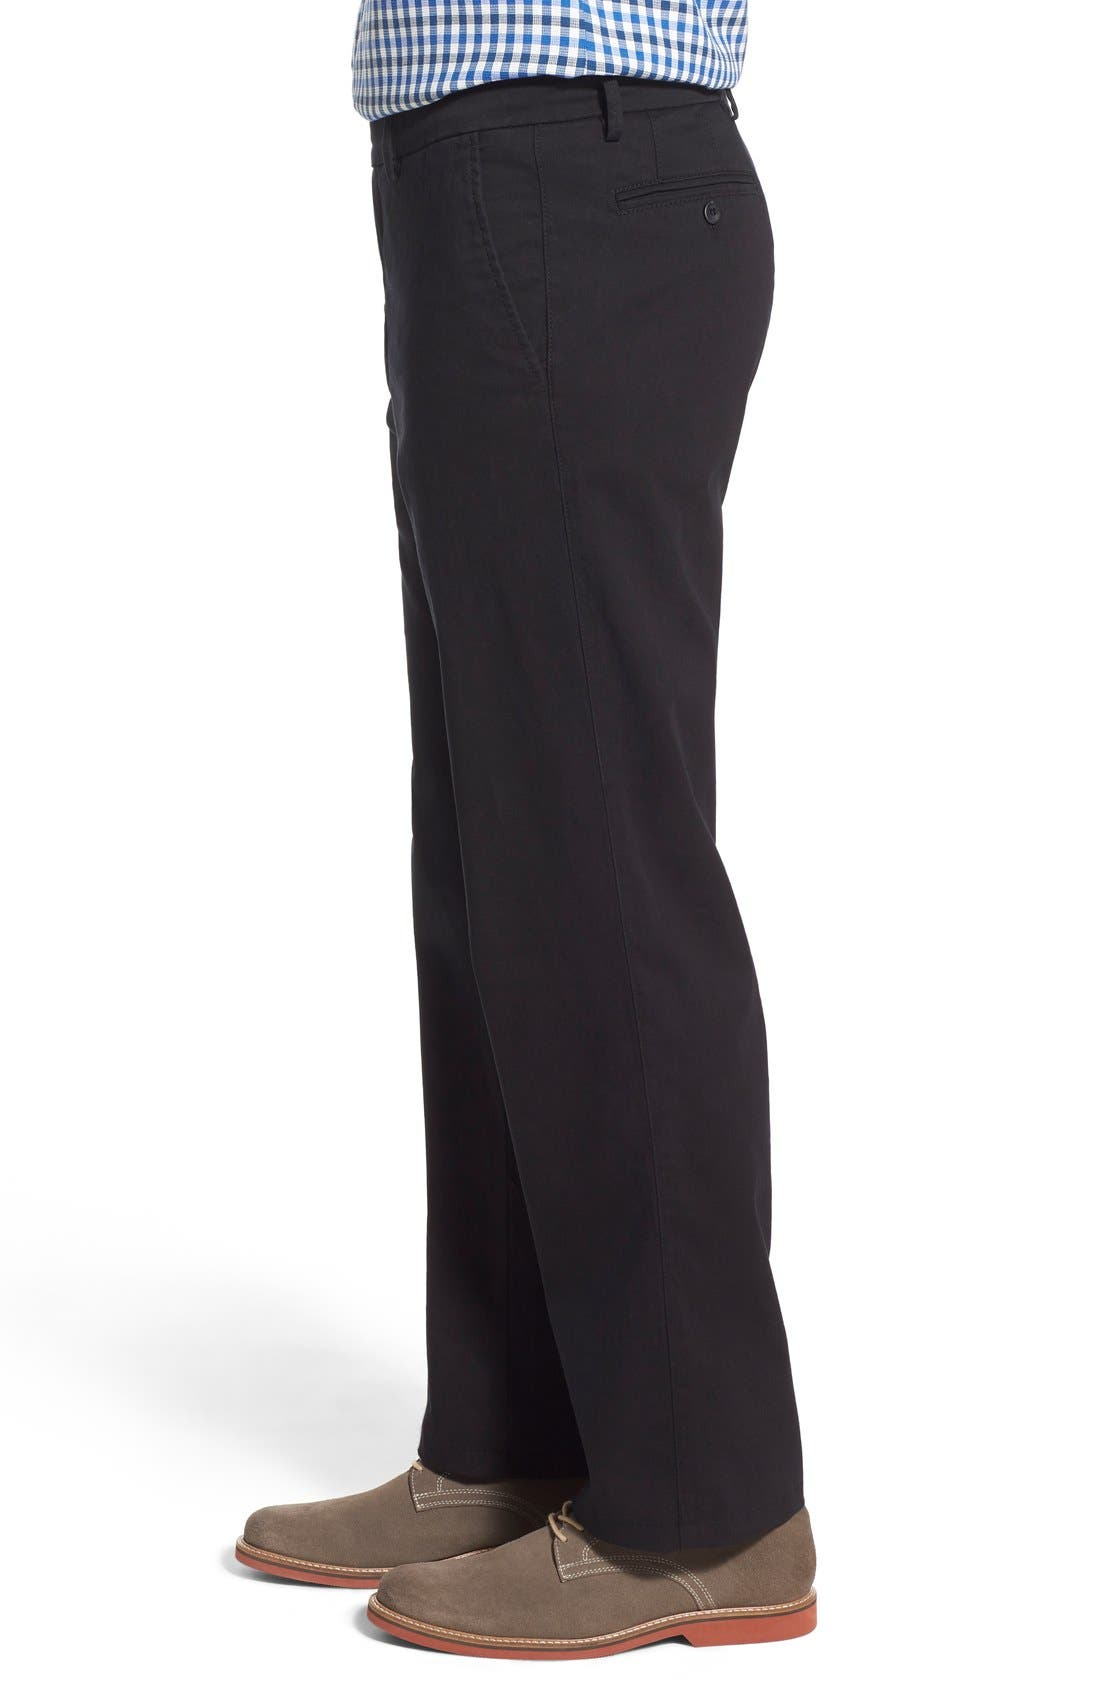 Mansfield Pima Cotton Pant,                             Alternate thumbnail 3, color,                             001